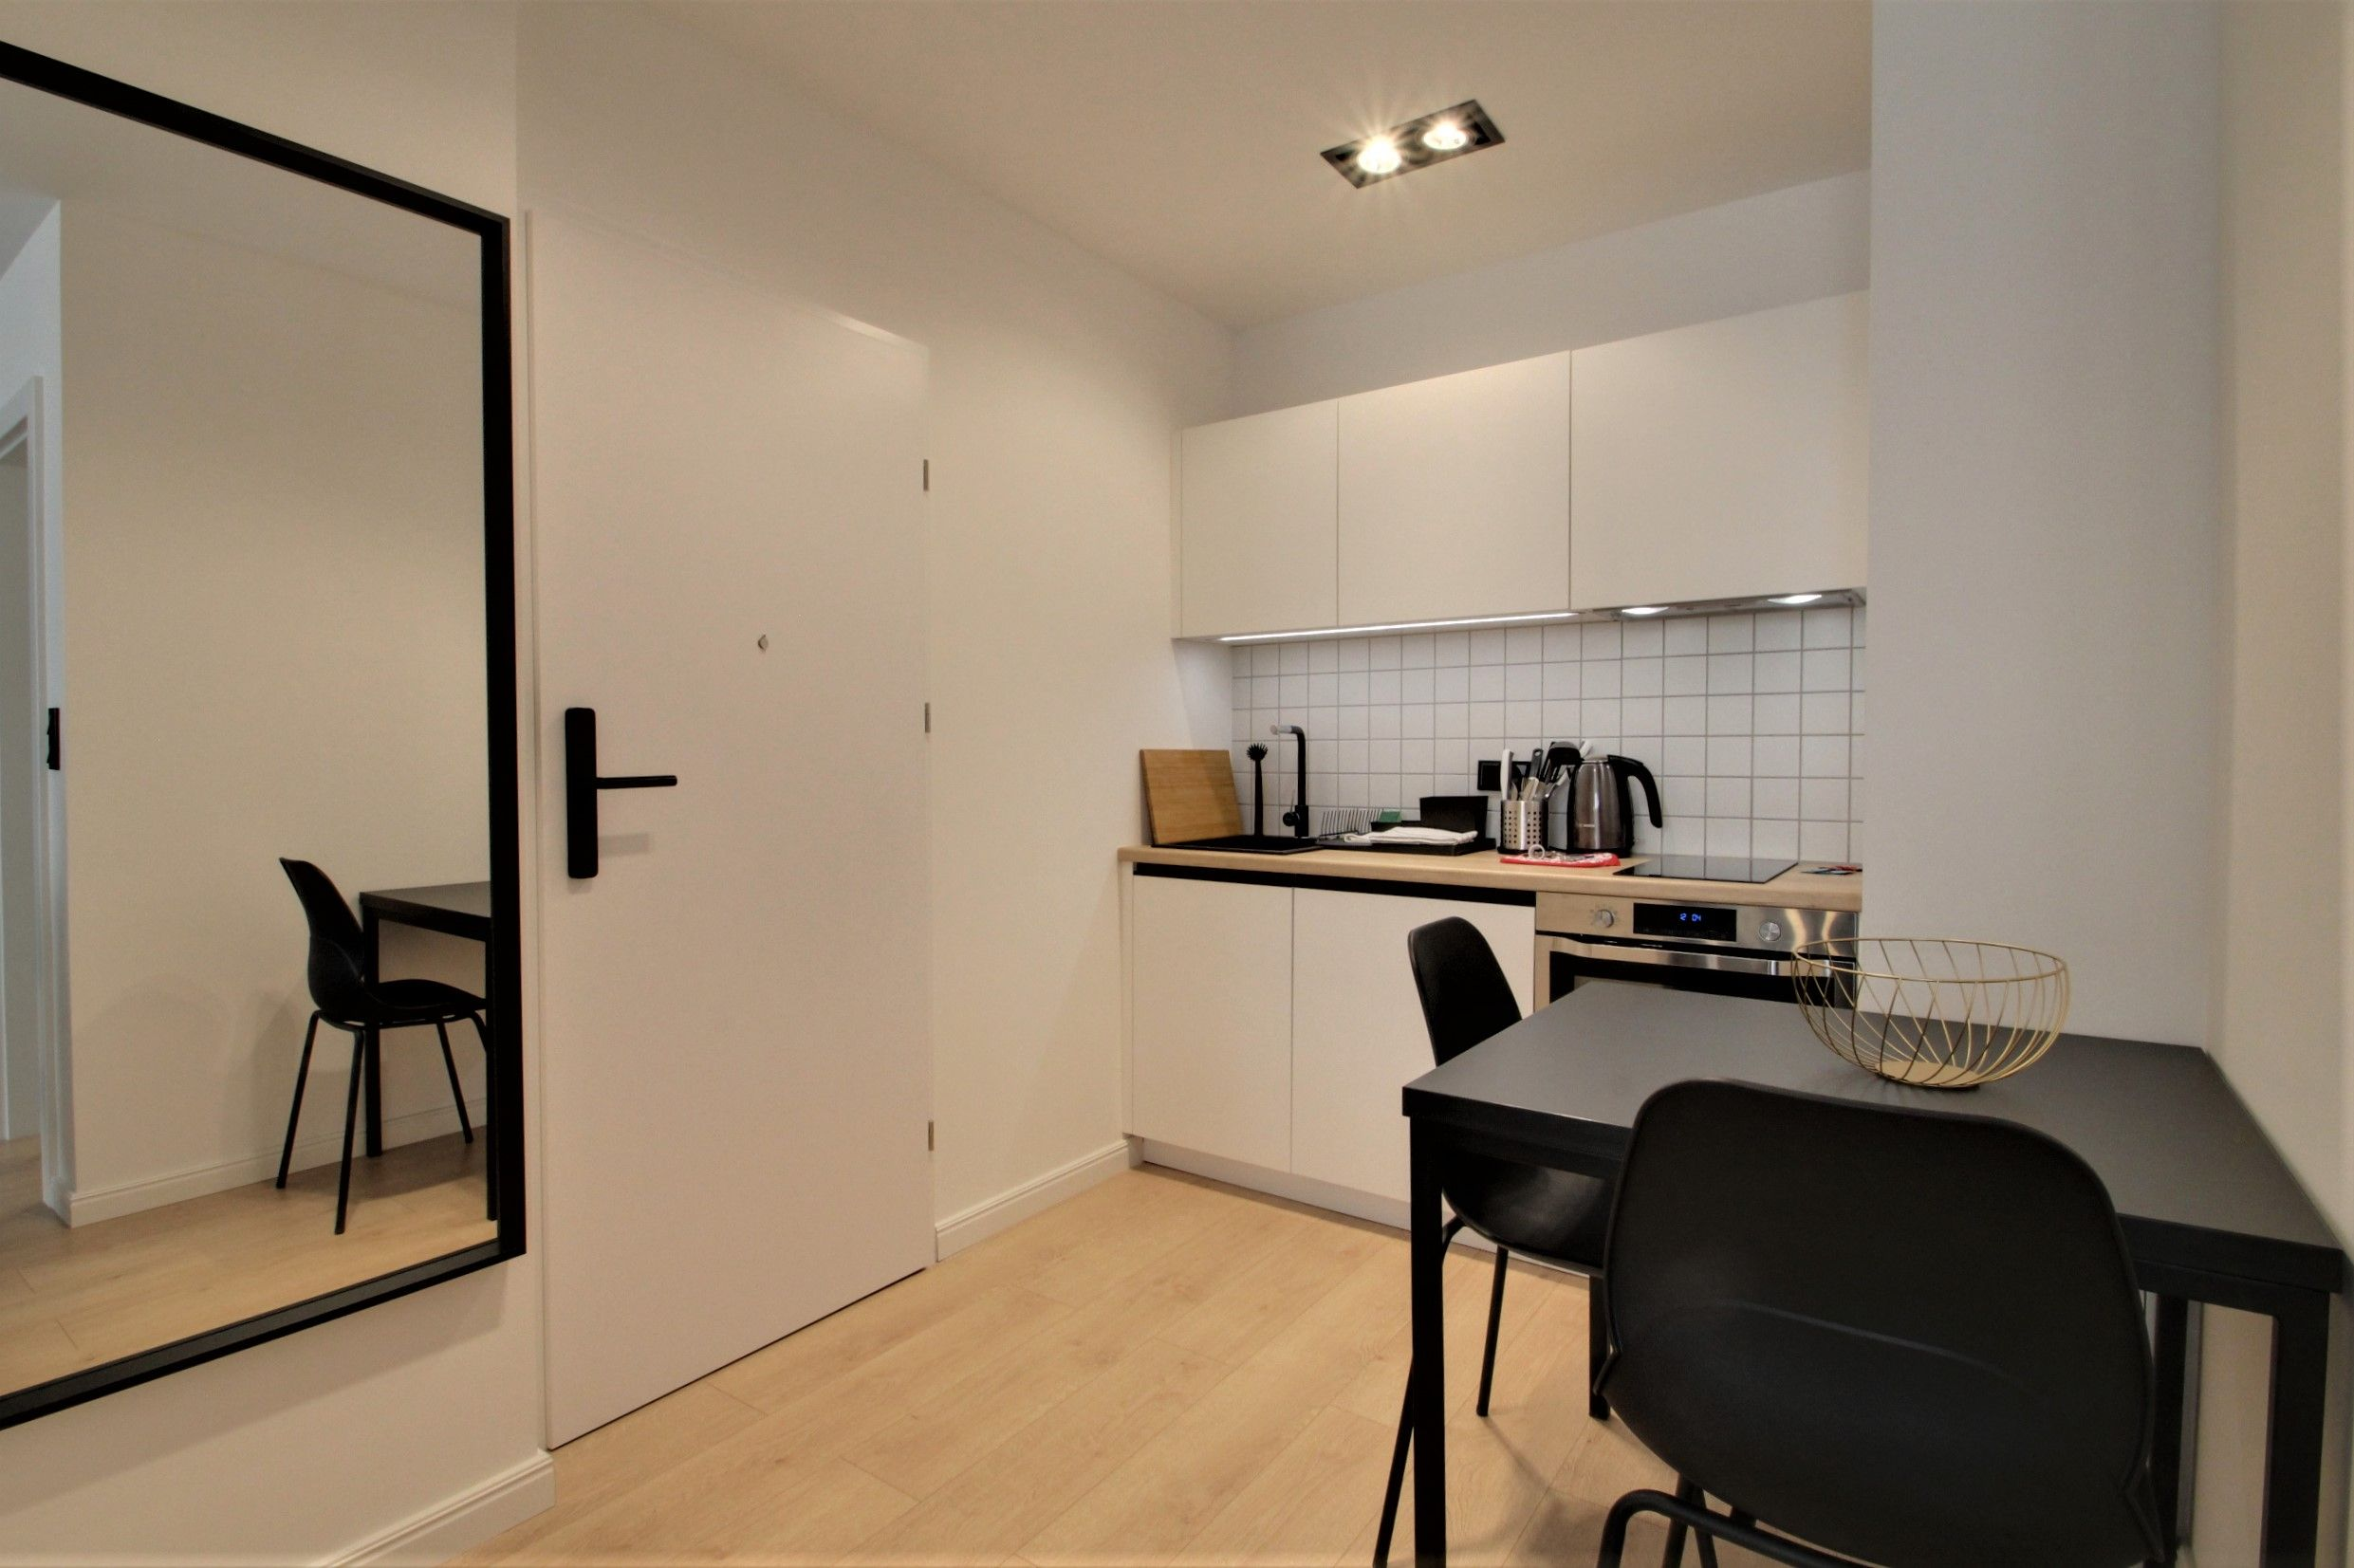 Studio - Small apartment to rent in Warsaw UPR-A-043-1